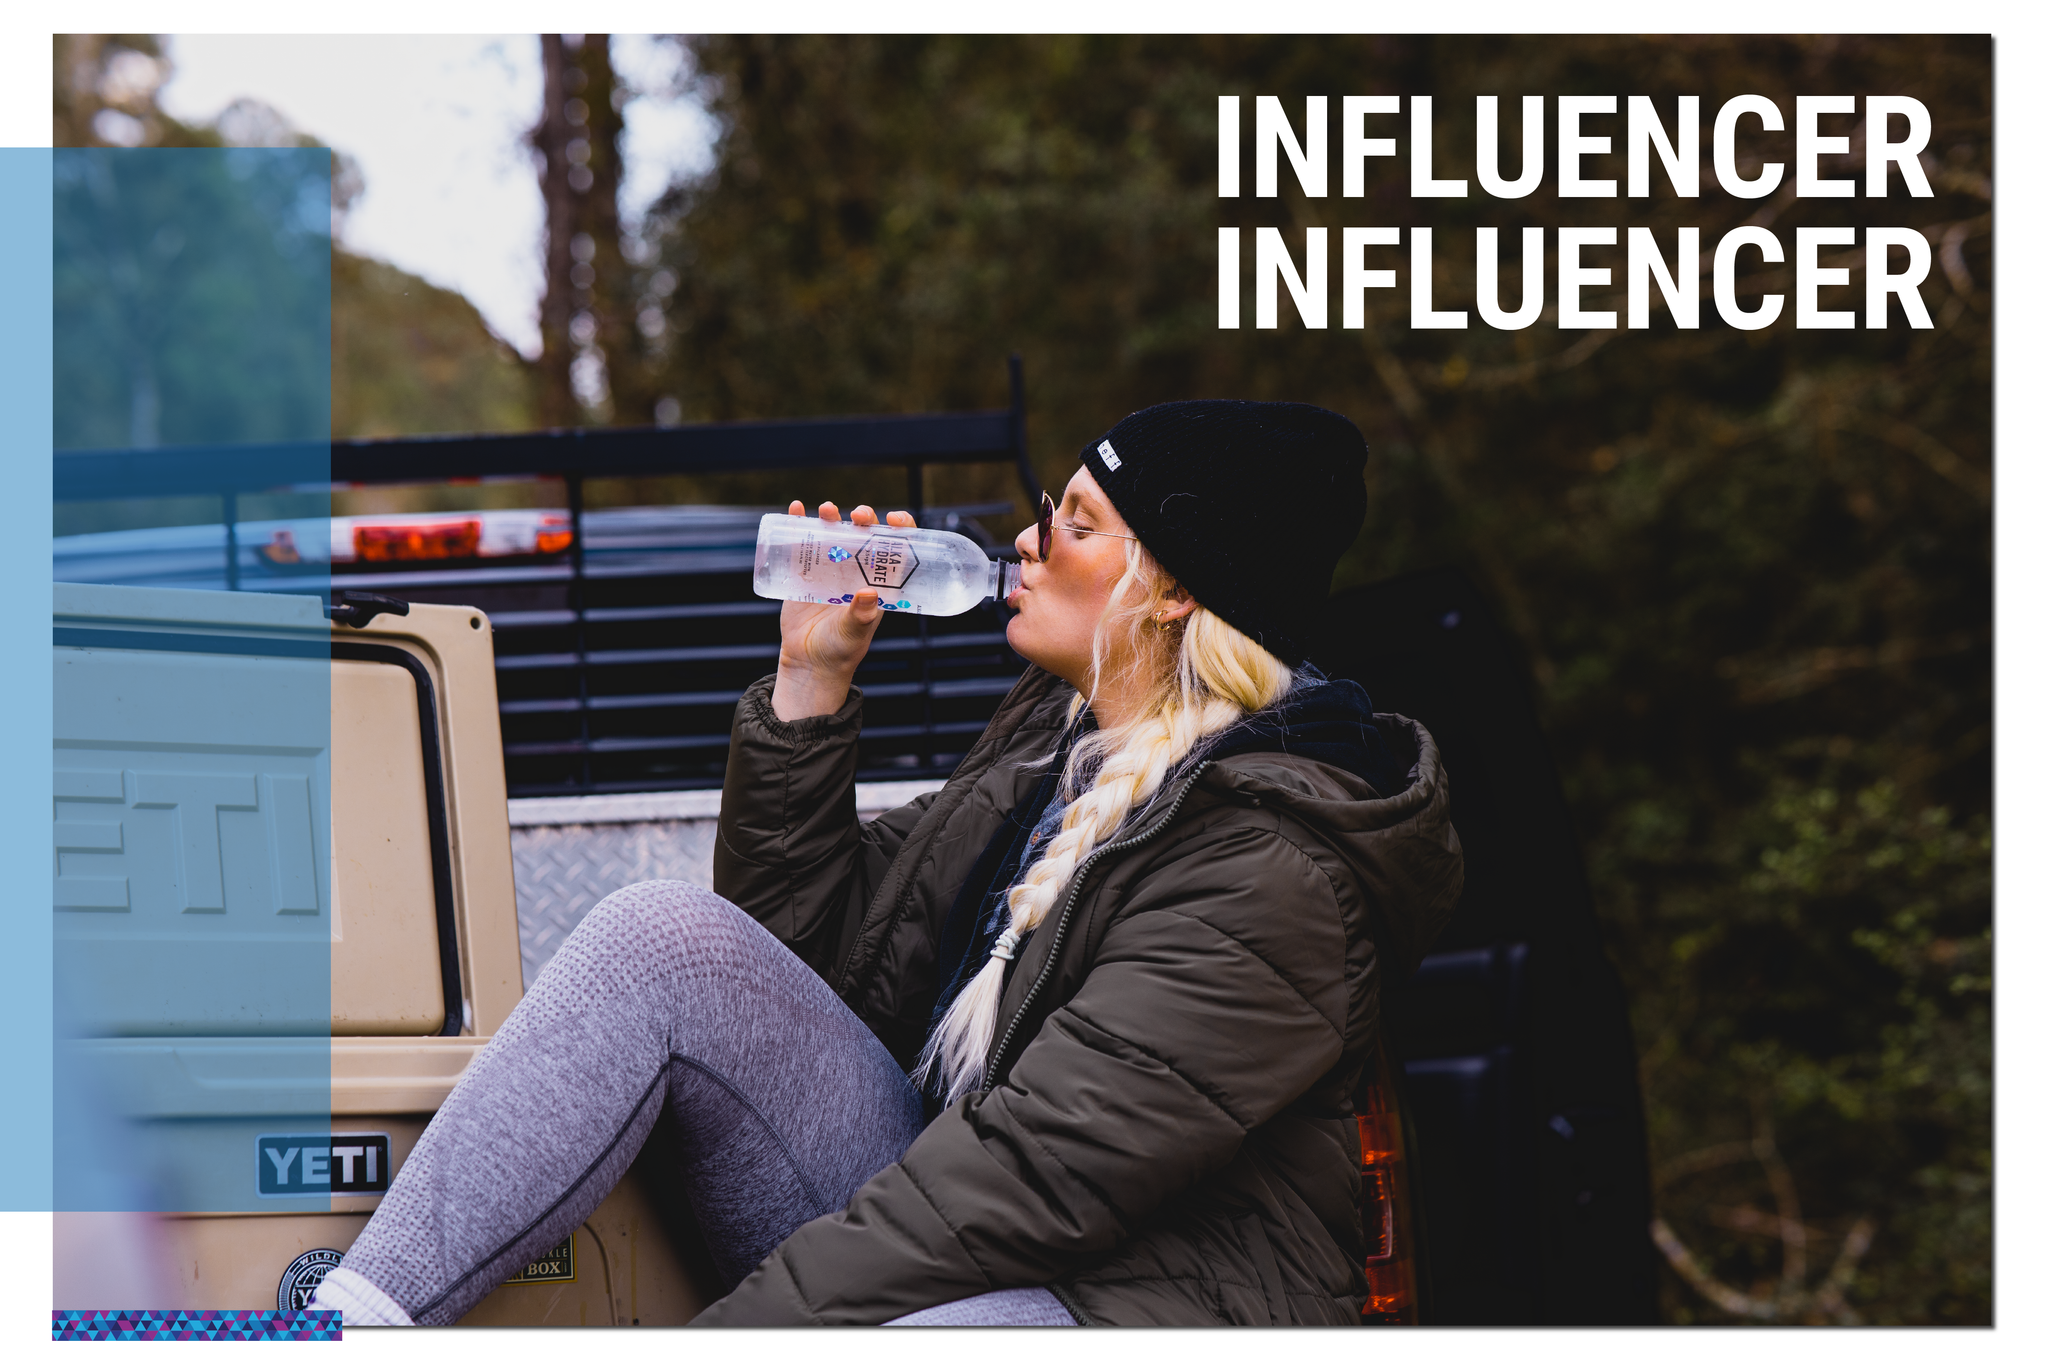 alka-hydrate alkaline water influencer signup